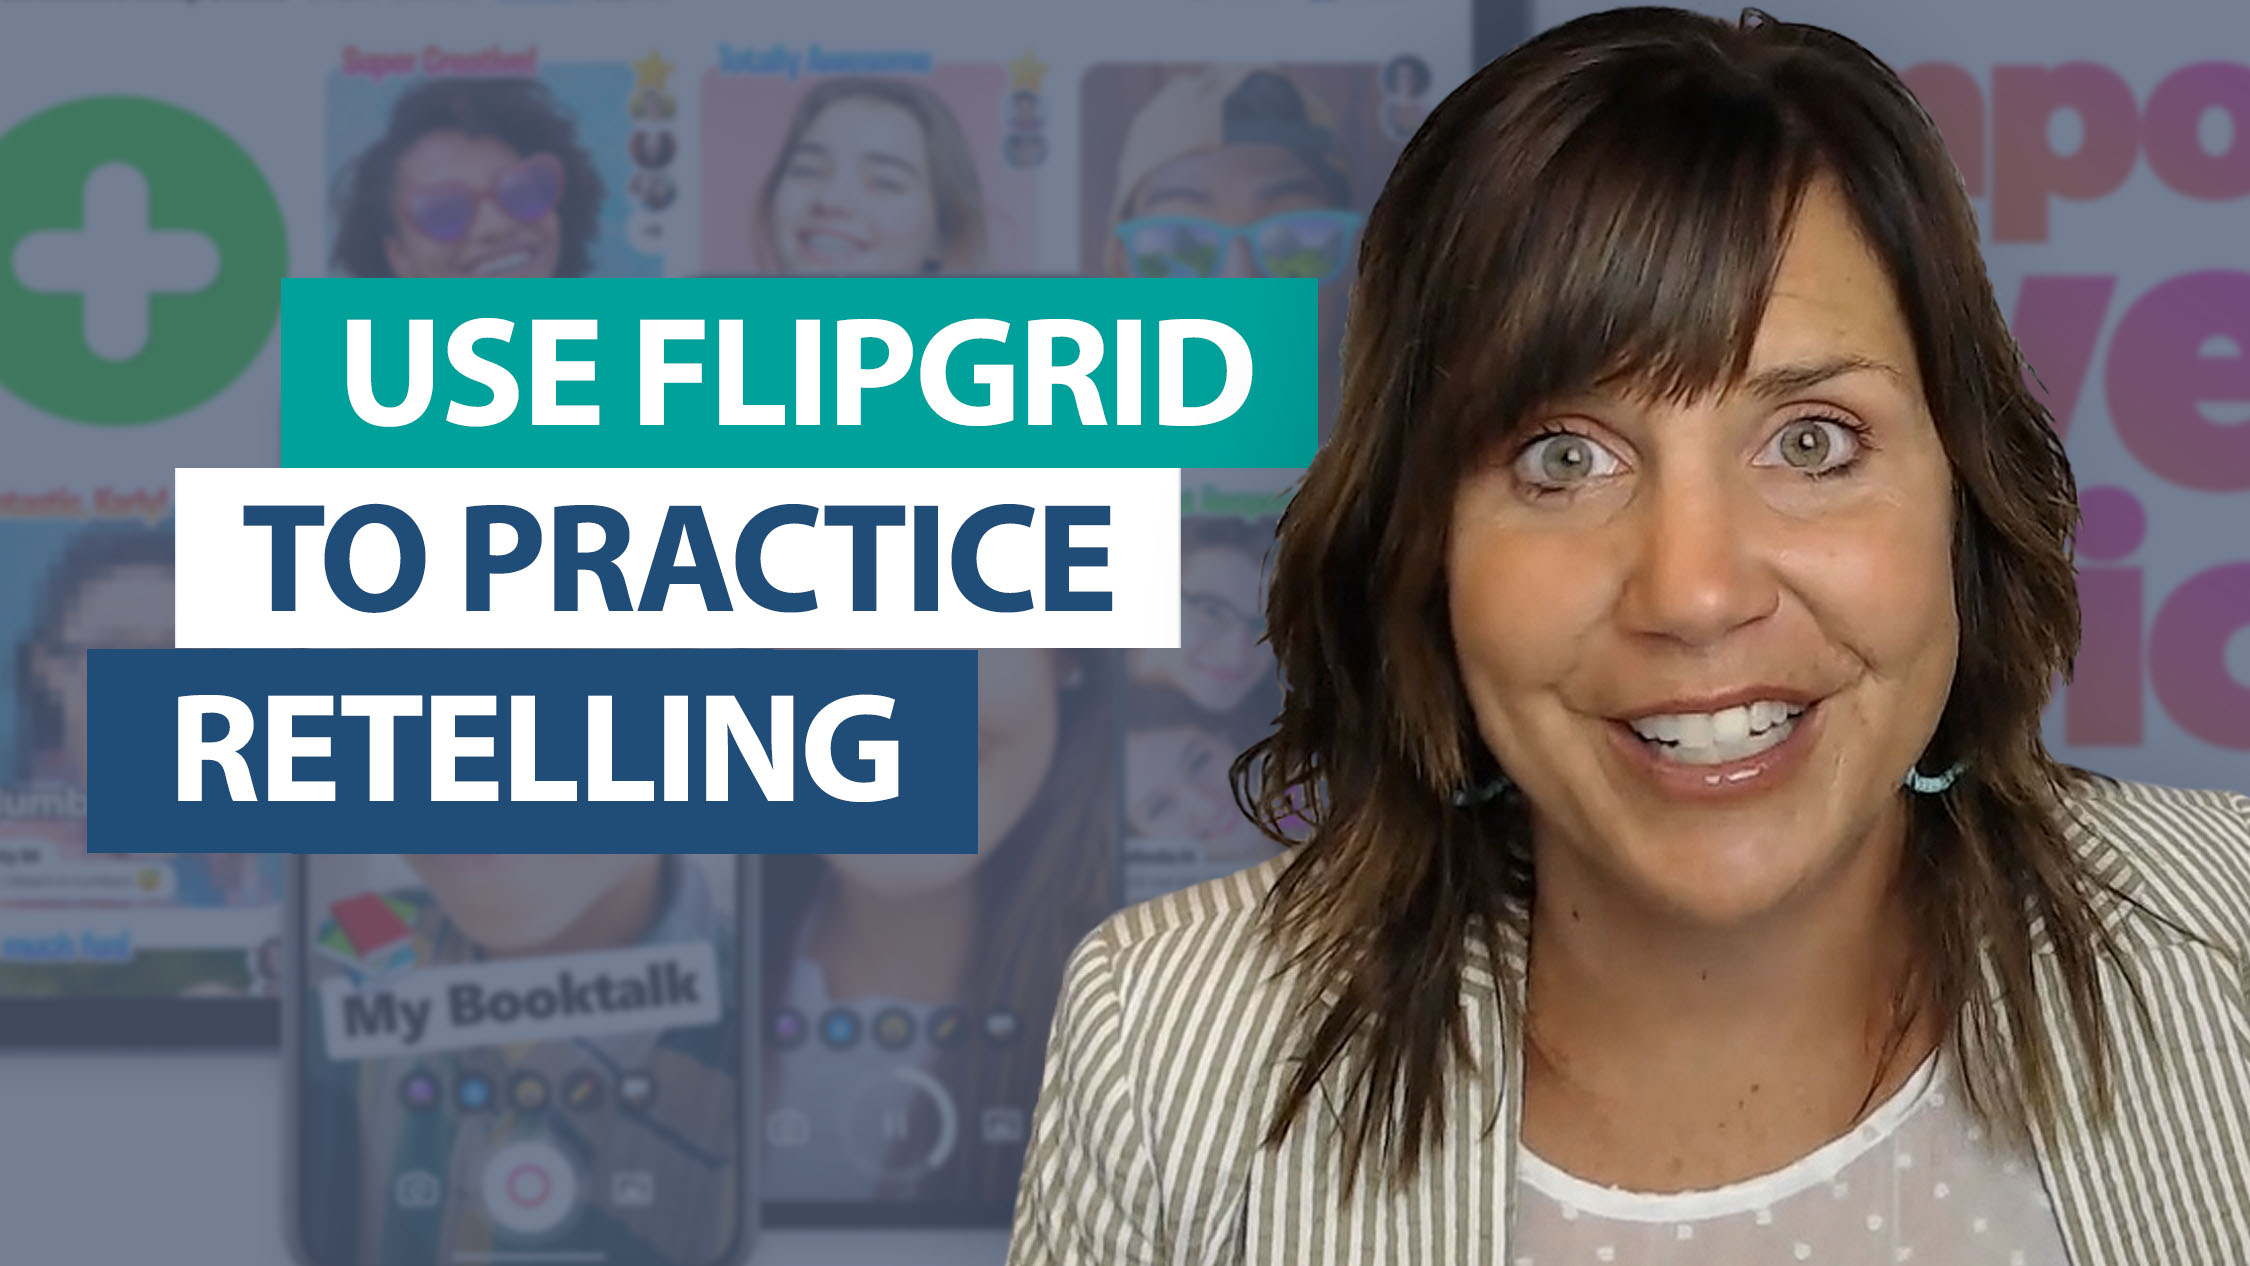 How can I use Flipgrid to Practice Retelling